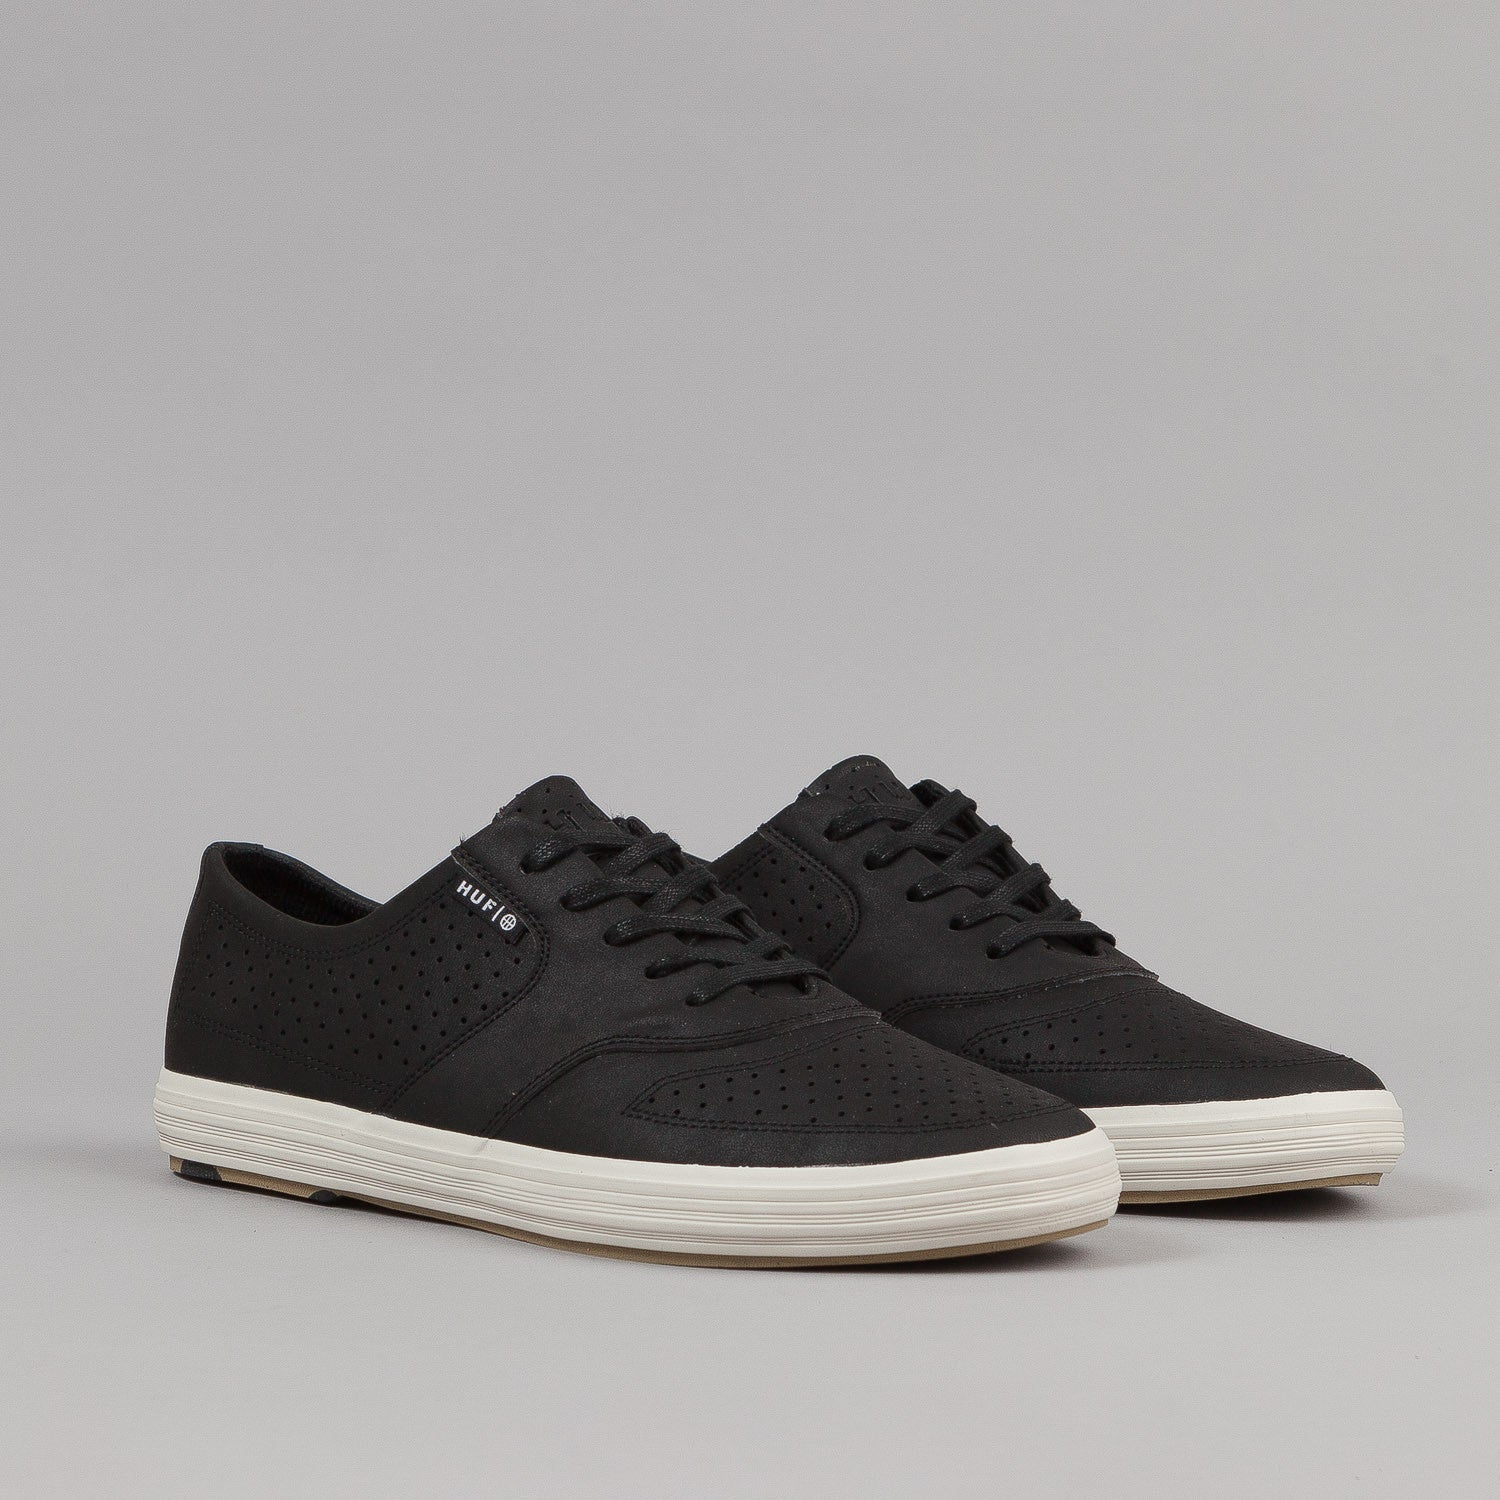 HUF Liberty Shoes - Black / Camo